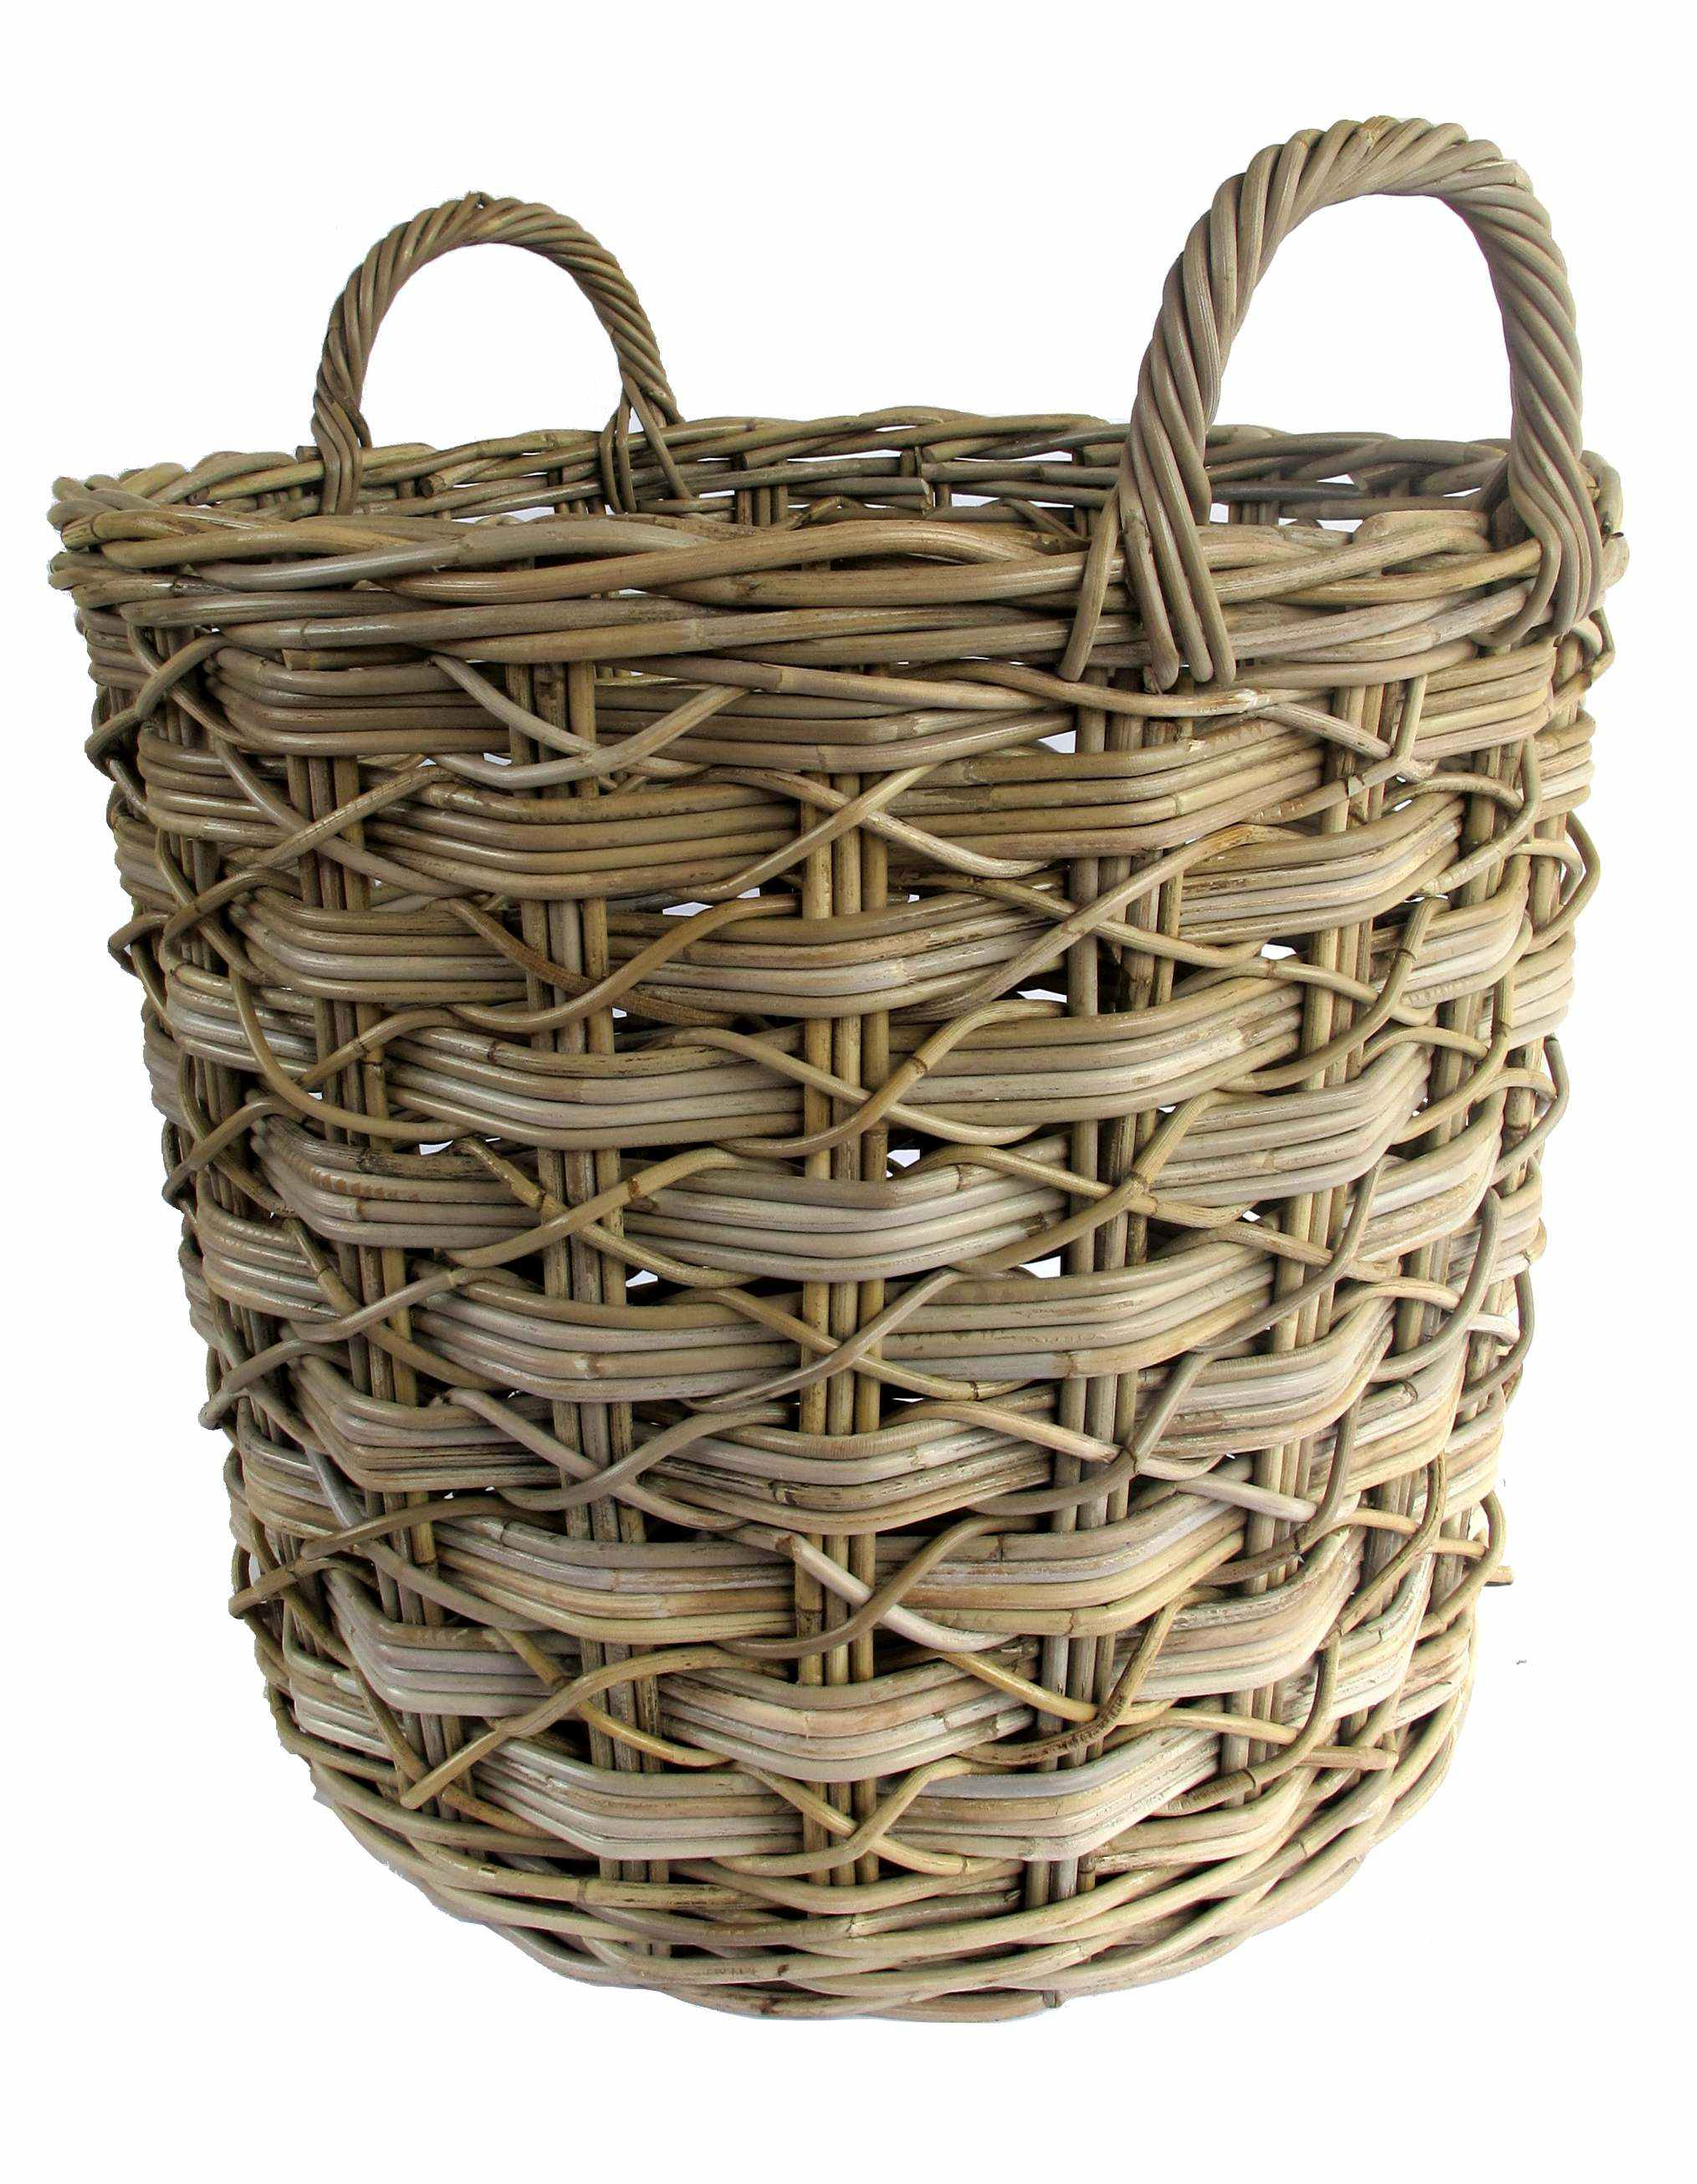 bike baskets | Rattan baskets supplier and manufacturer from Indonesia